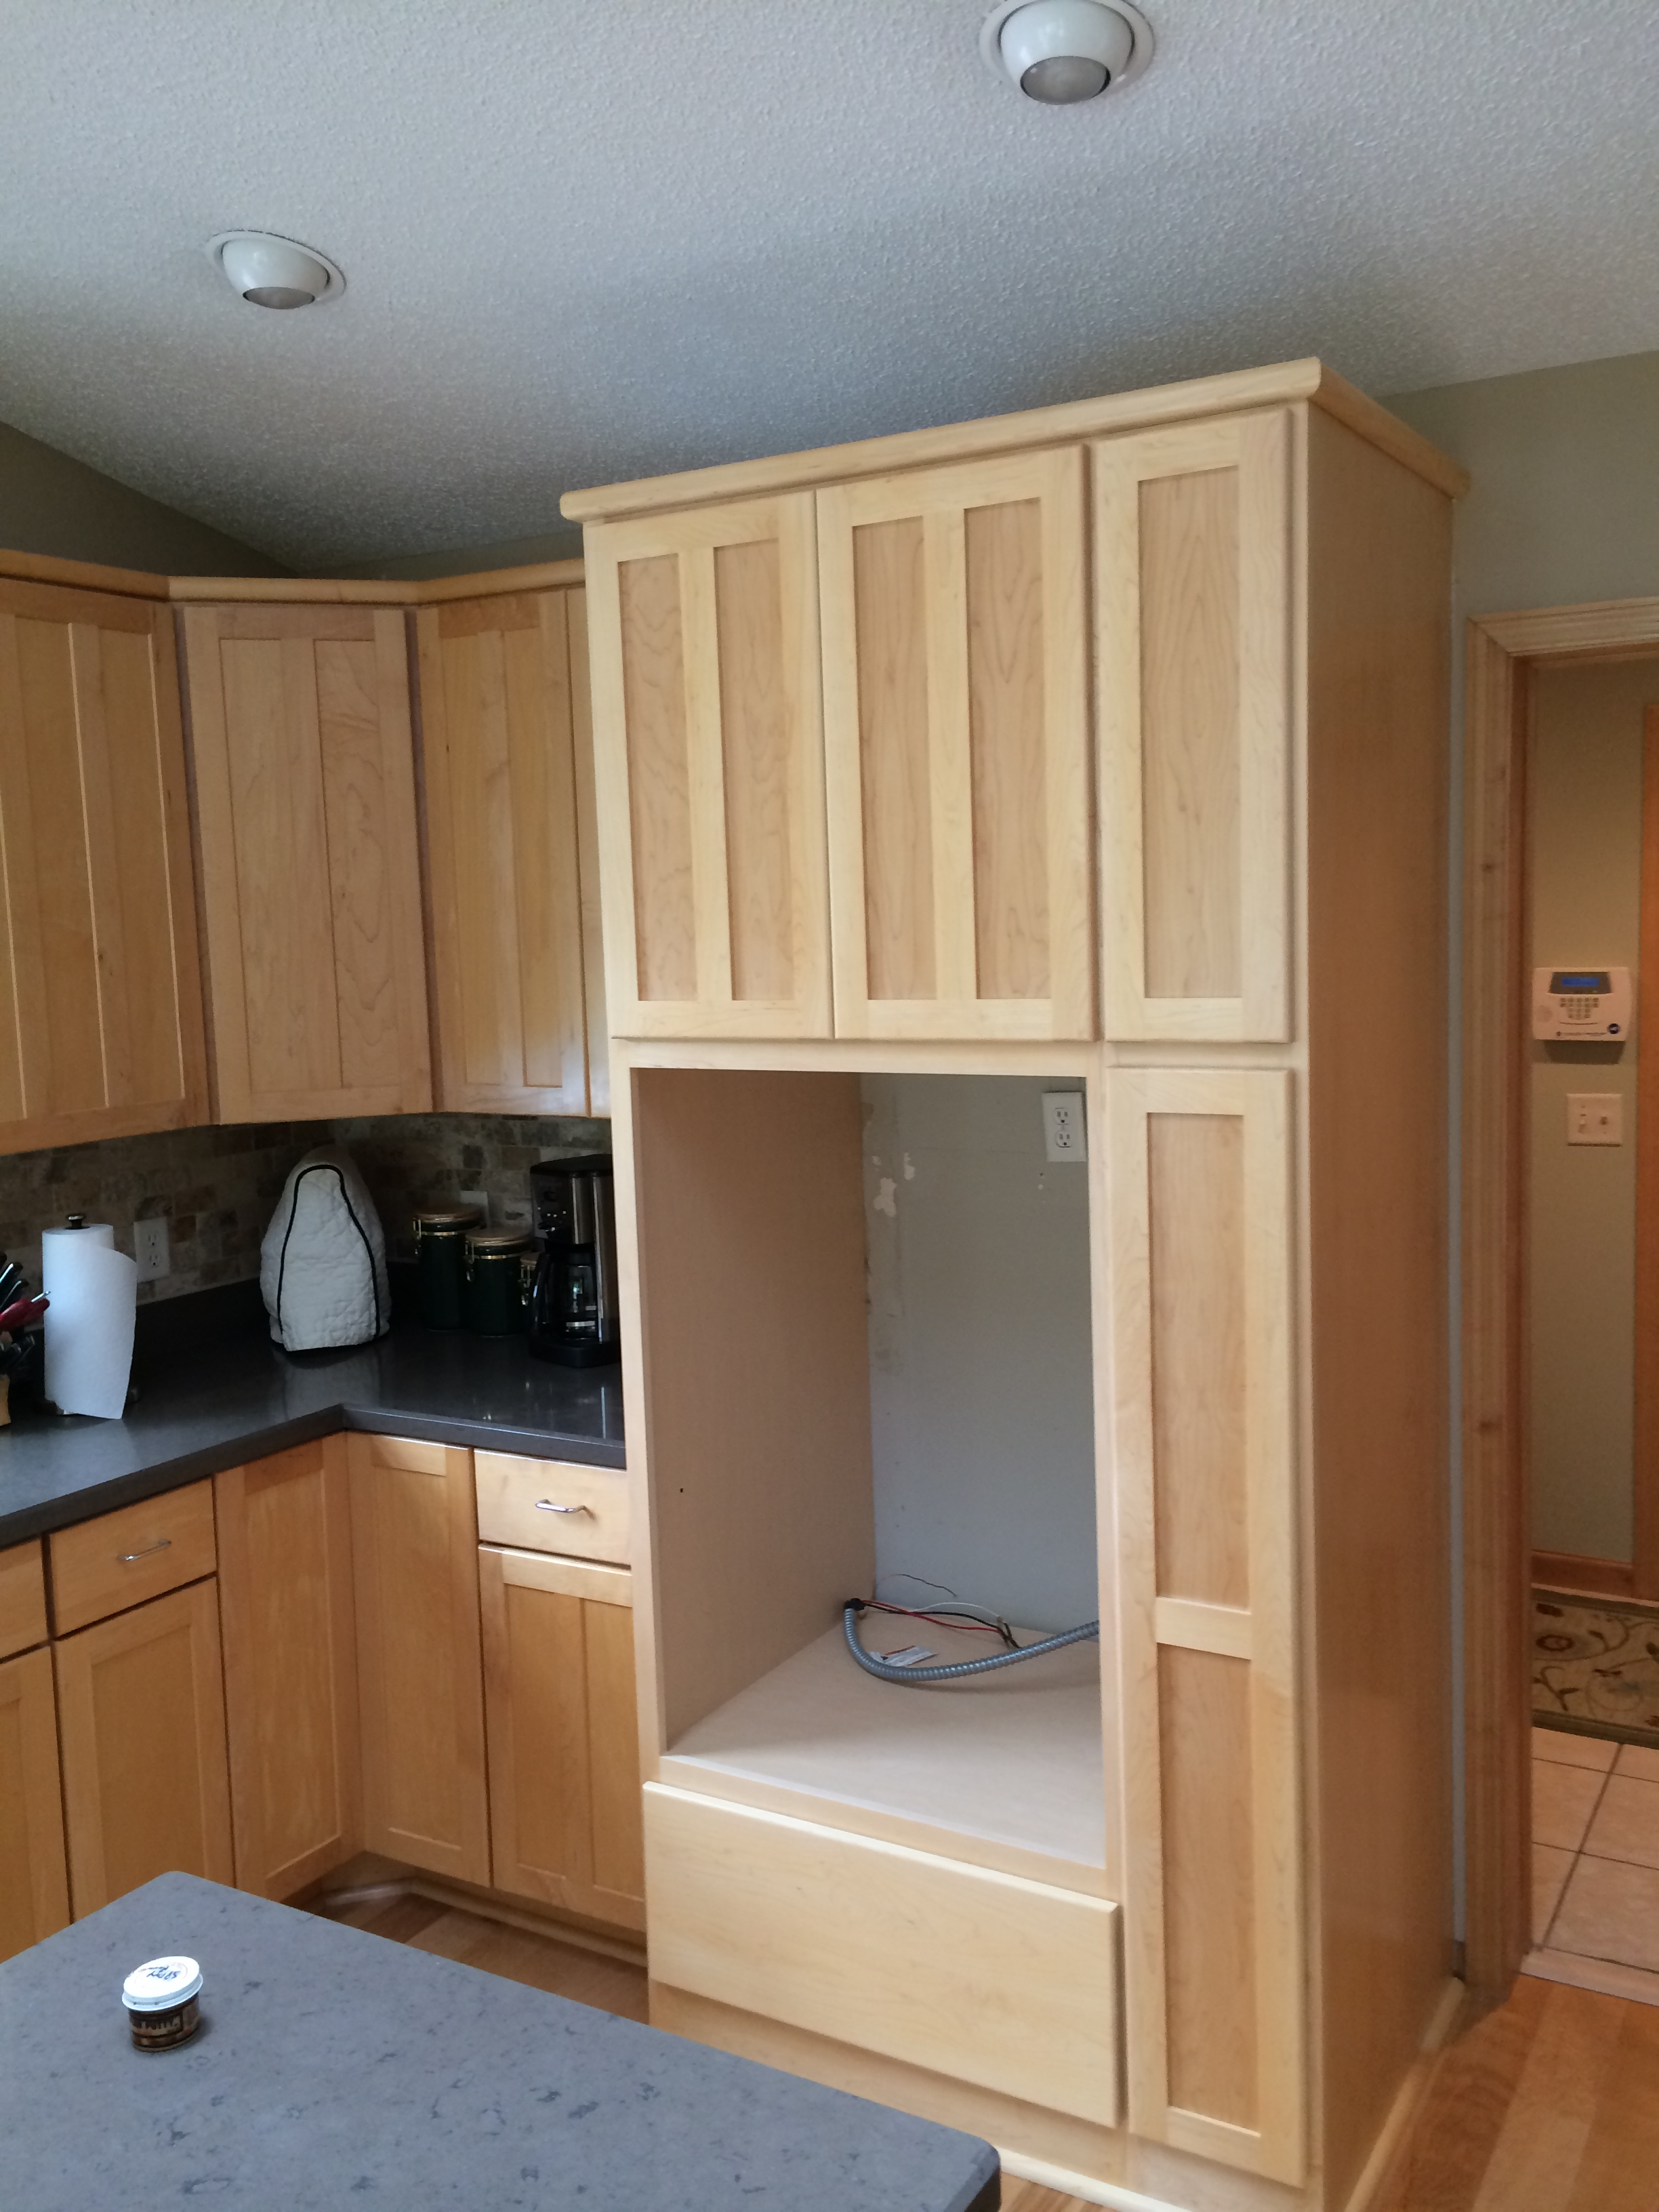 Valley custom cabinets custom cabinets hudson for Double kitchen cabinets